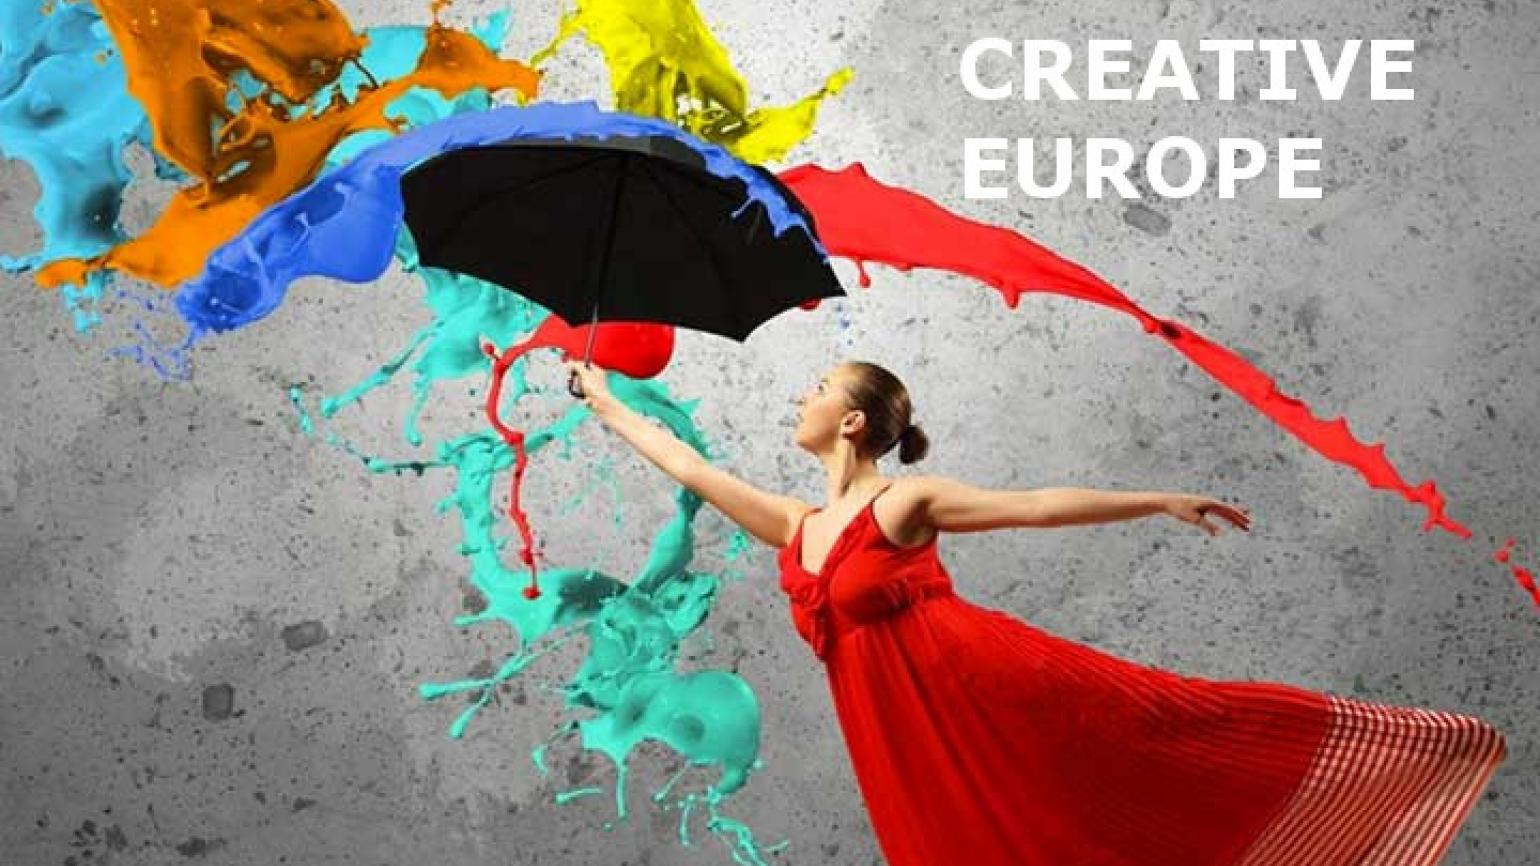 Creative Europe - Media Secondary Program: Open for new entries